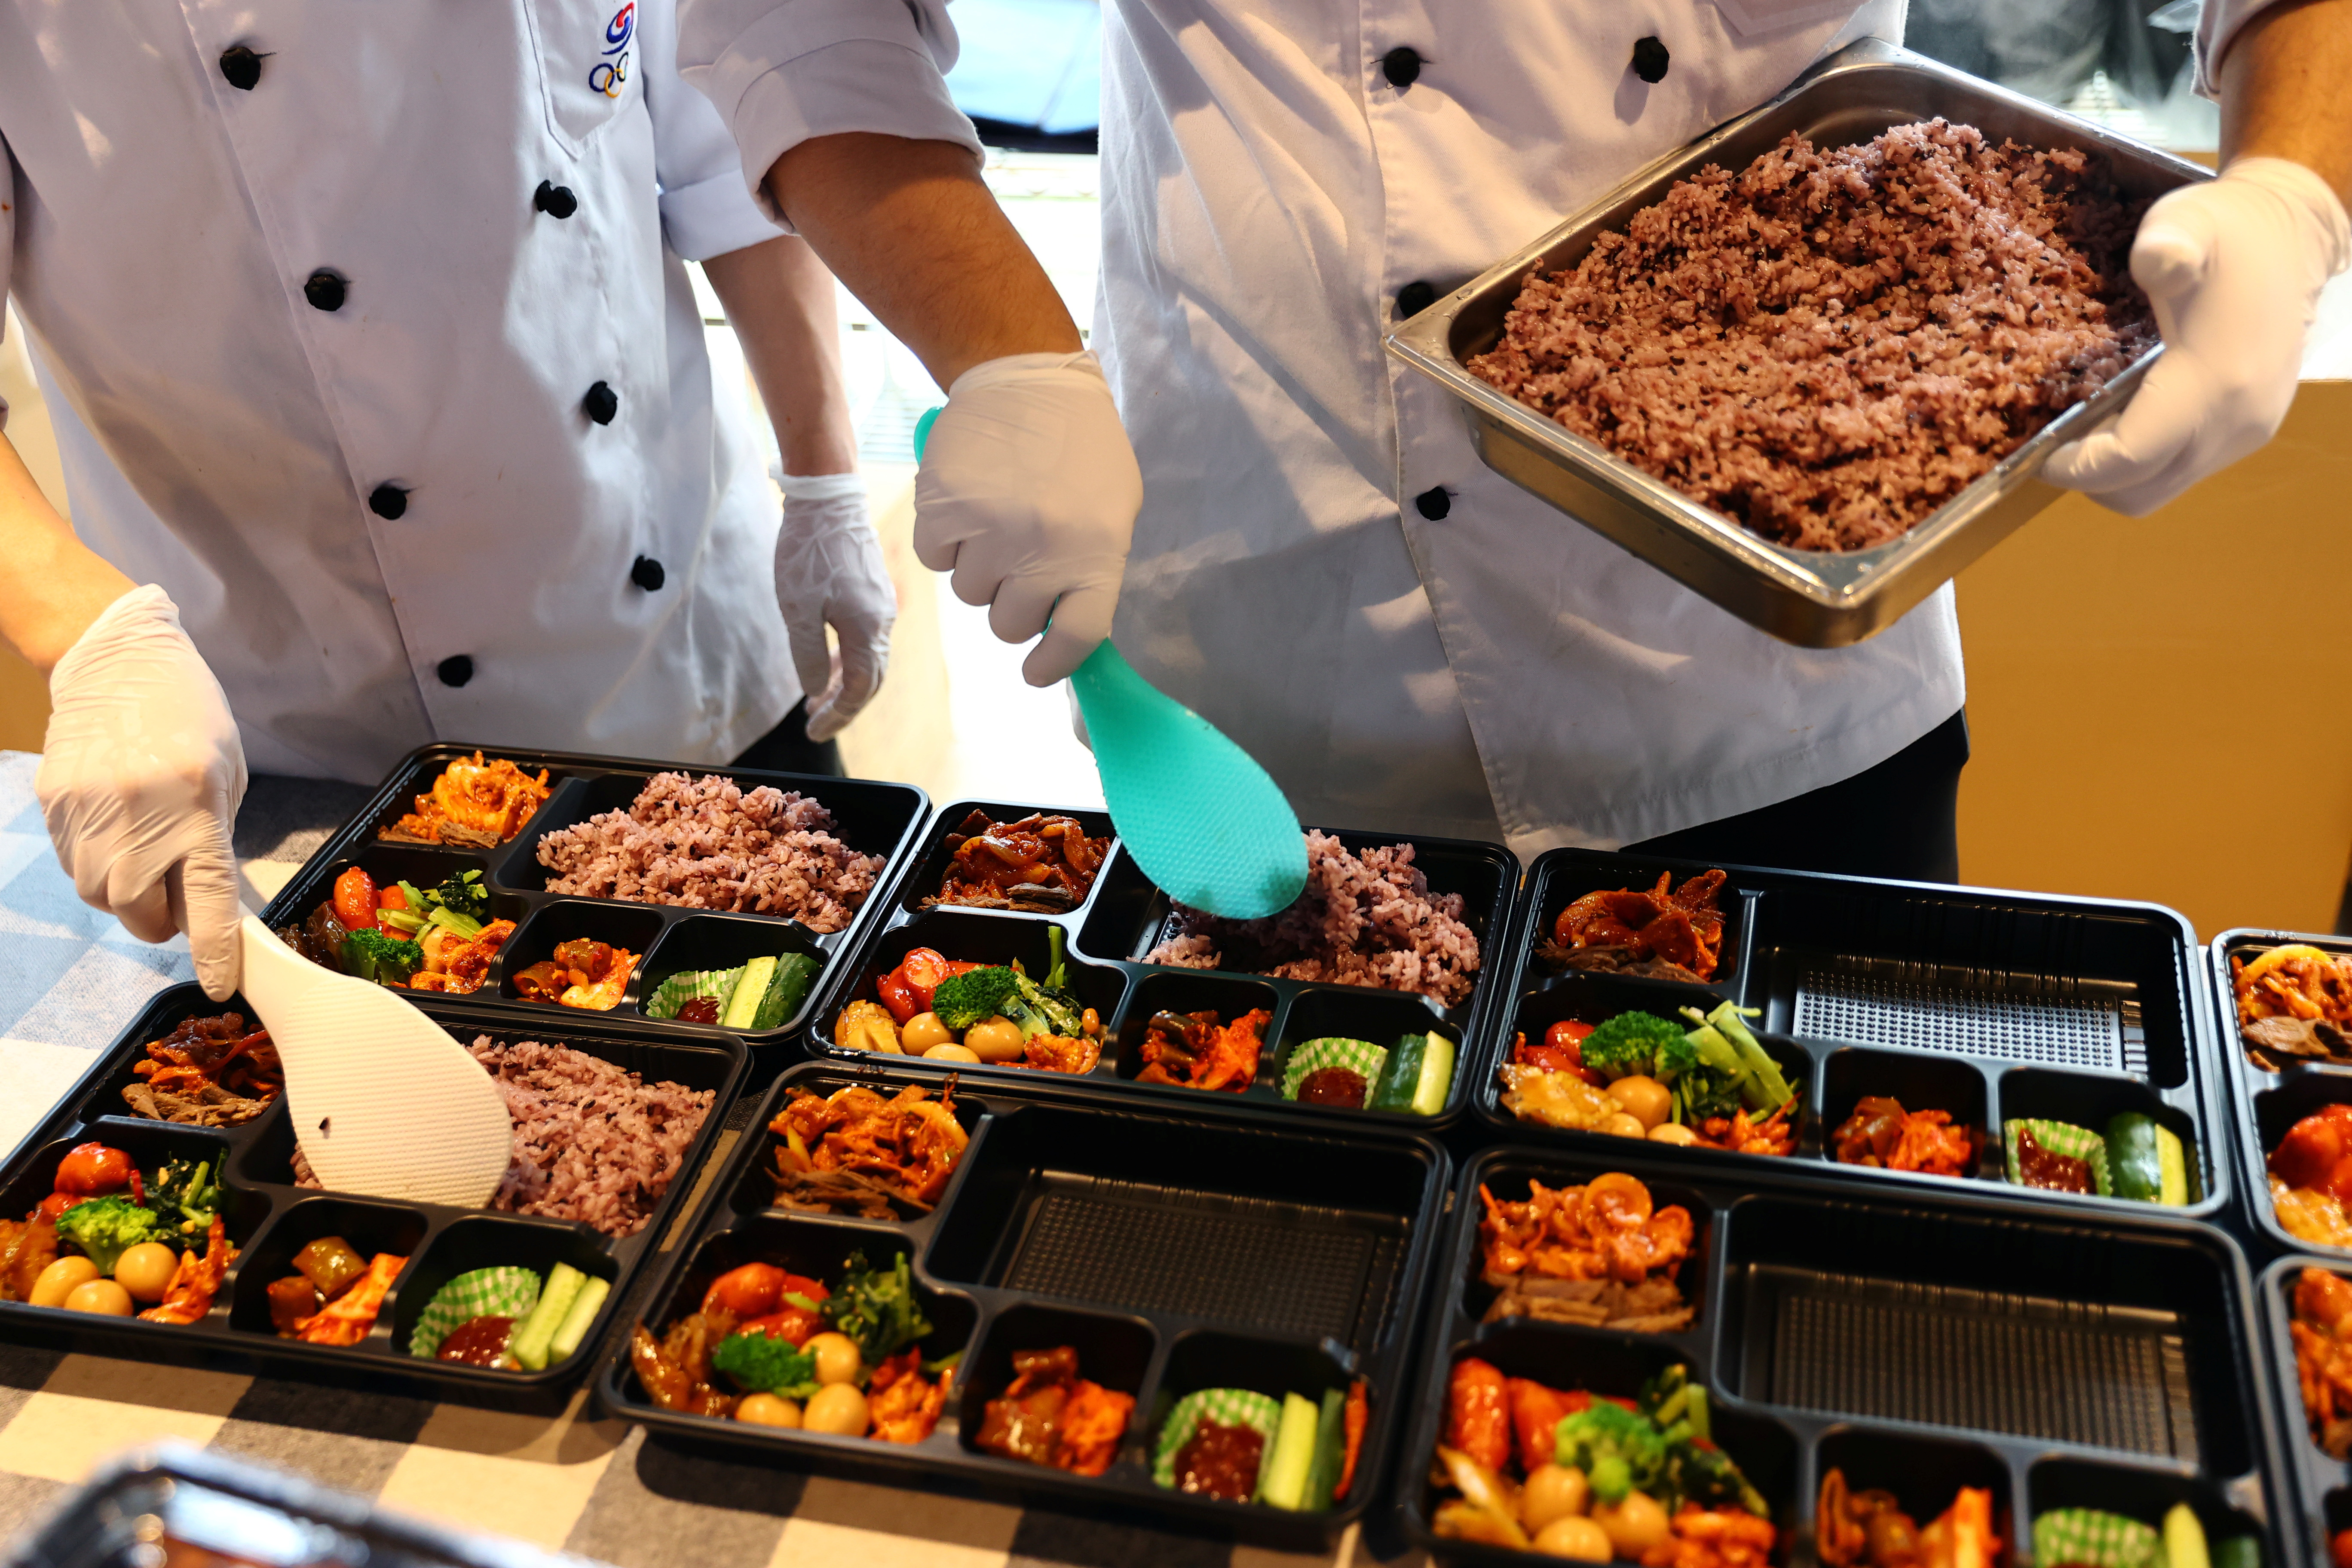 Chefs dispatched from South Korea prepare boxed meals for the country's Tokyo 2020 Olympic Games athletes at a hotel in Urayasu, Chiba Prefecture, Japan, July 26, 2021.   REUTERS/Kim Kyung-Hoon